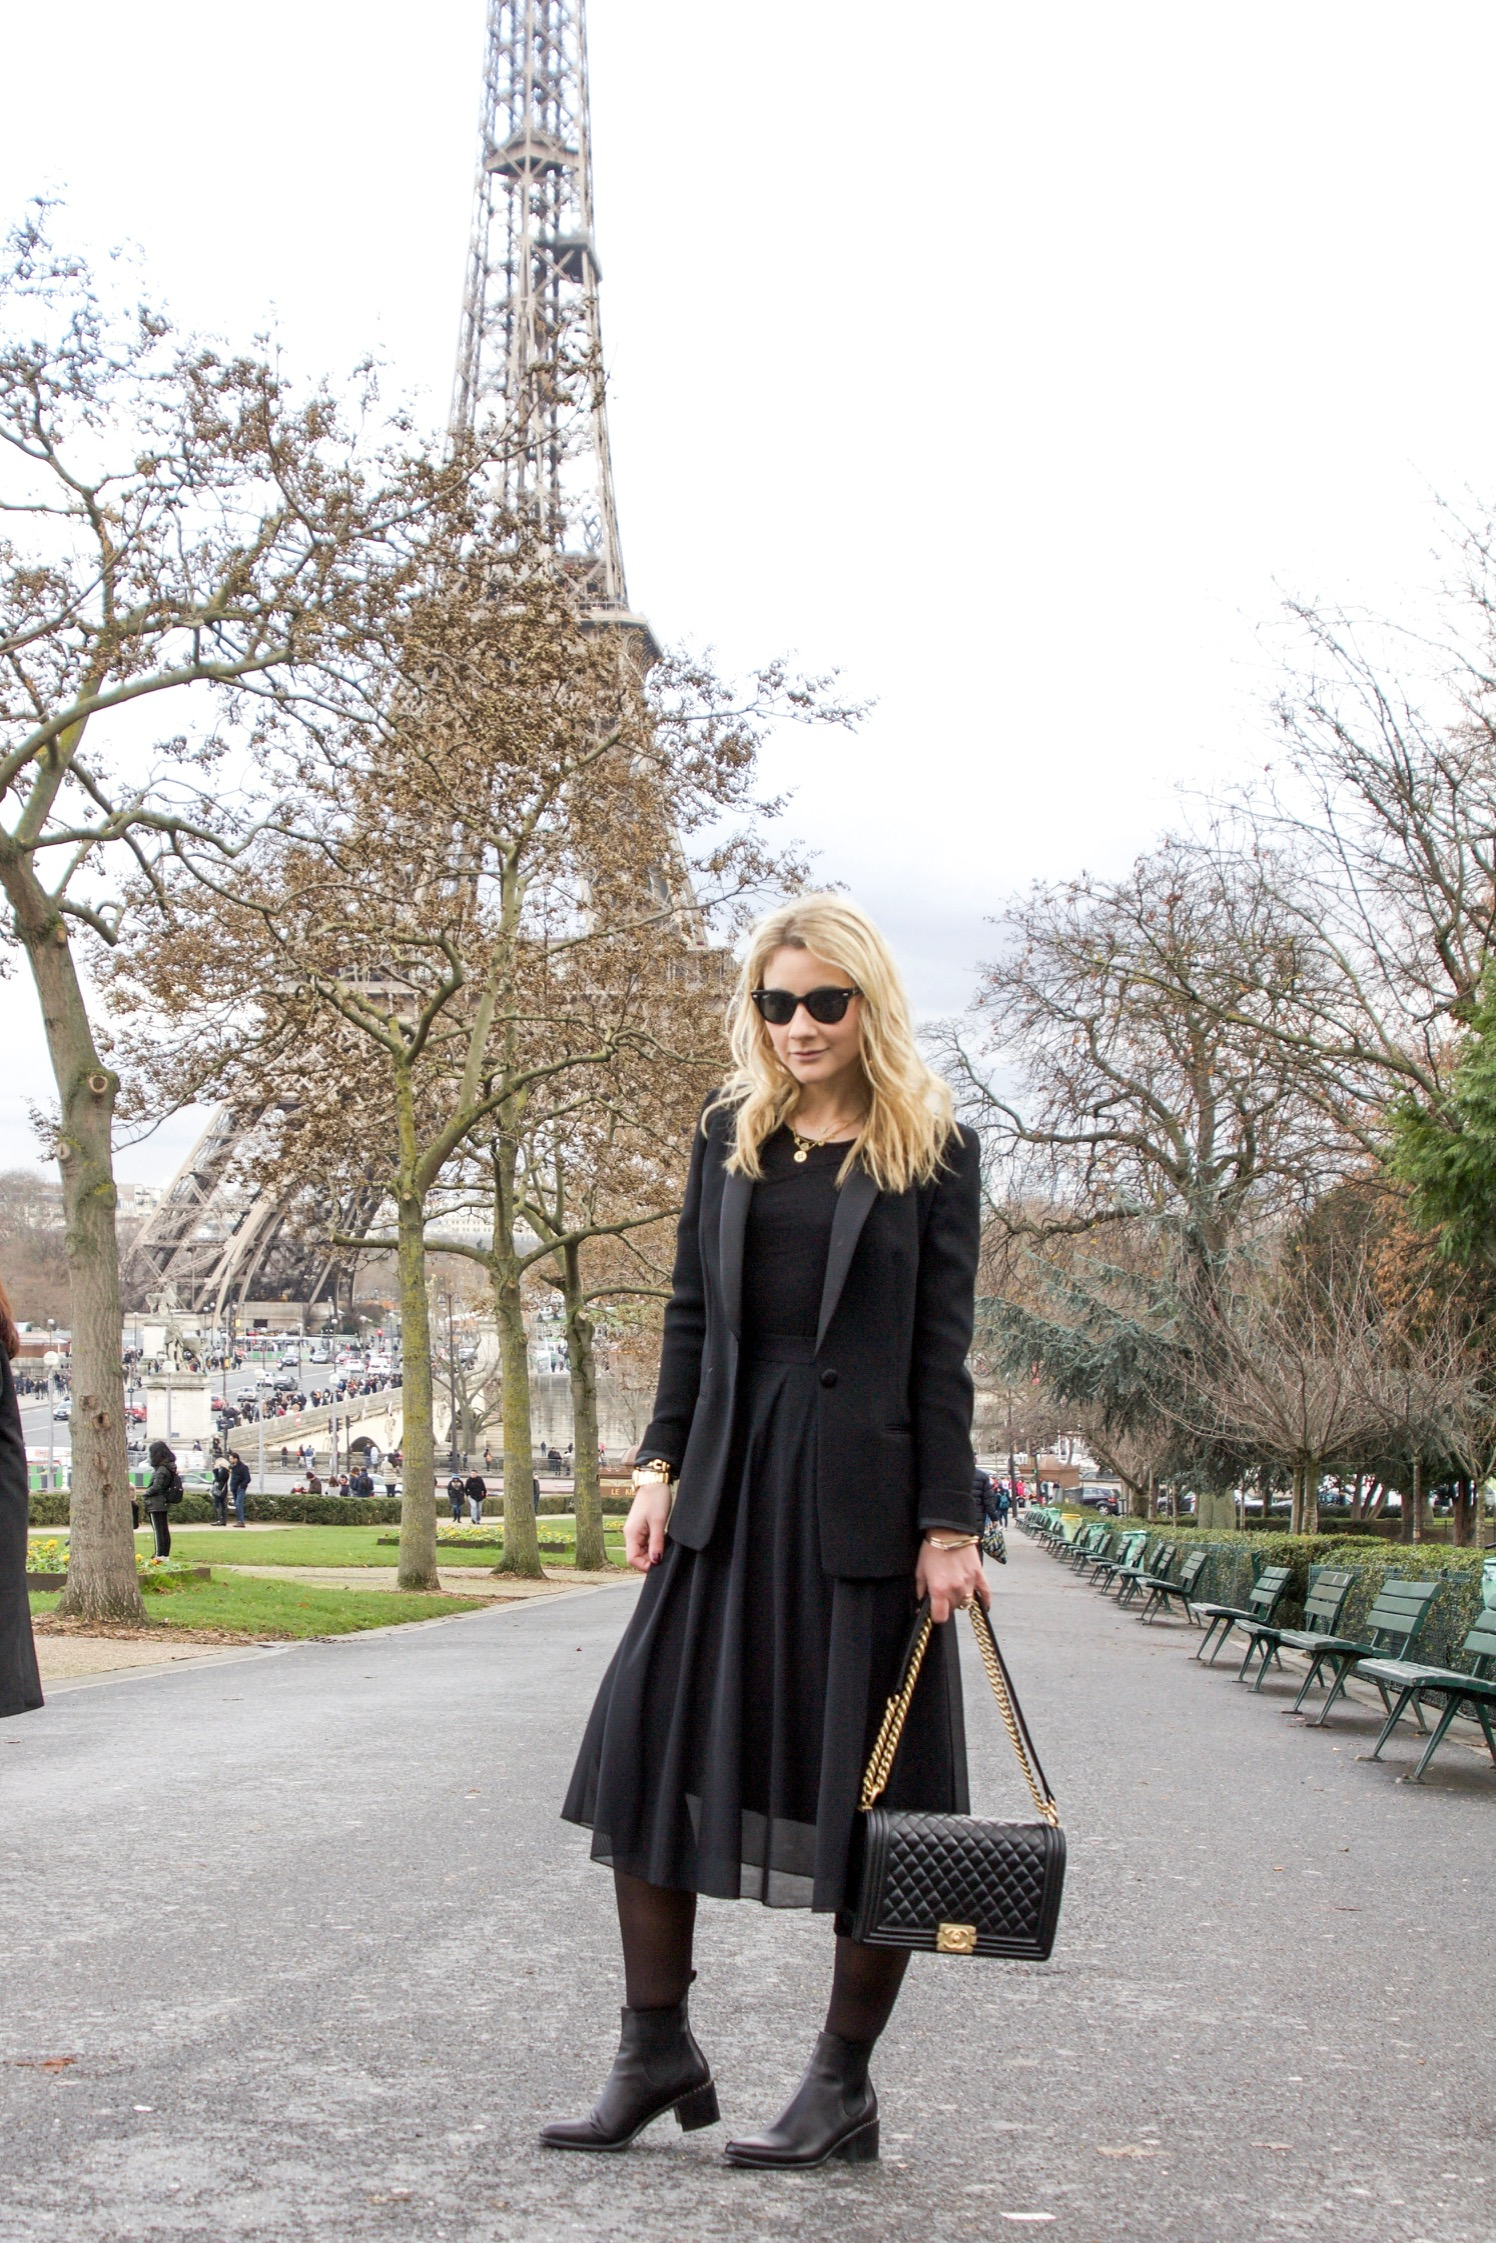 Manoire Paris, blog mode, camille benaroche, blog beauté, lifestyle, travels, mode, streetstyle, blog mode paris